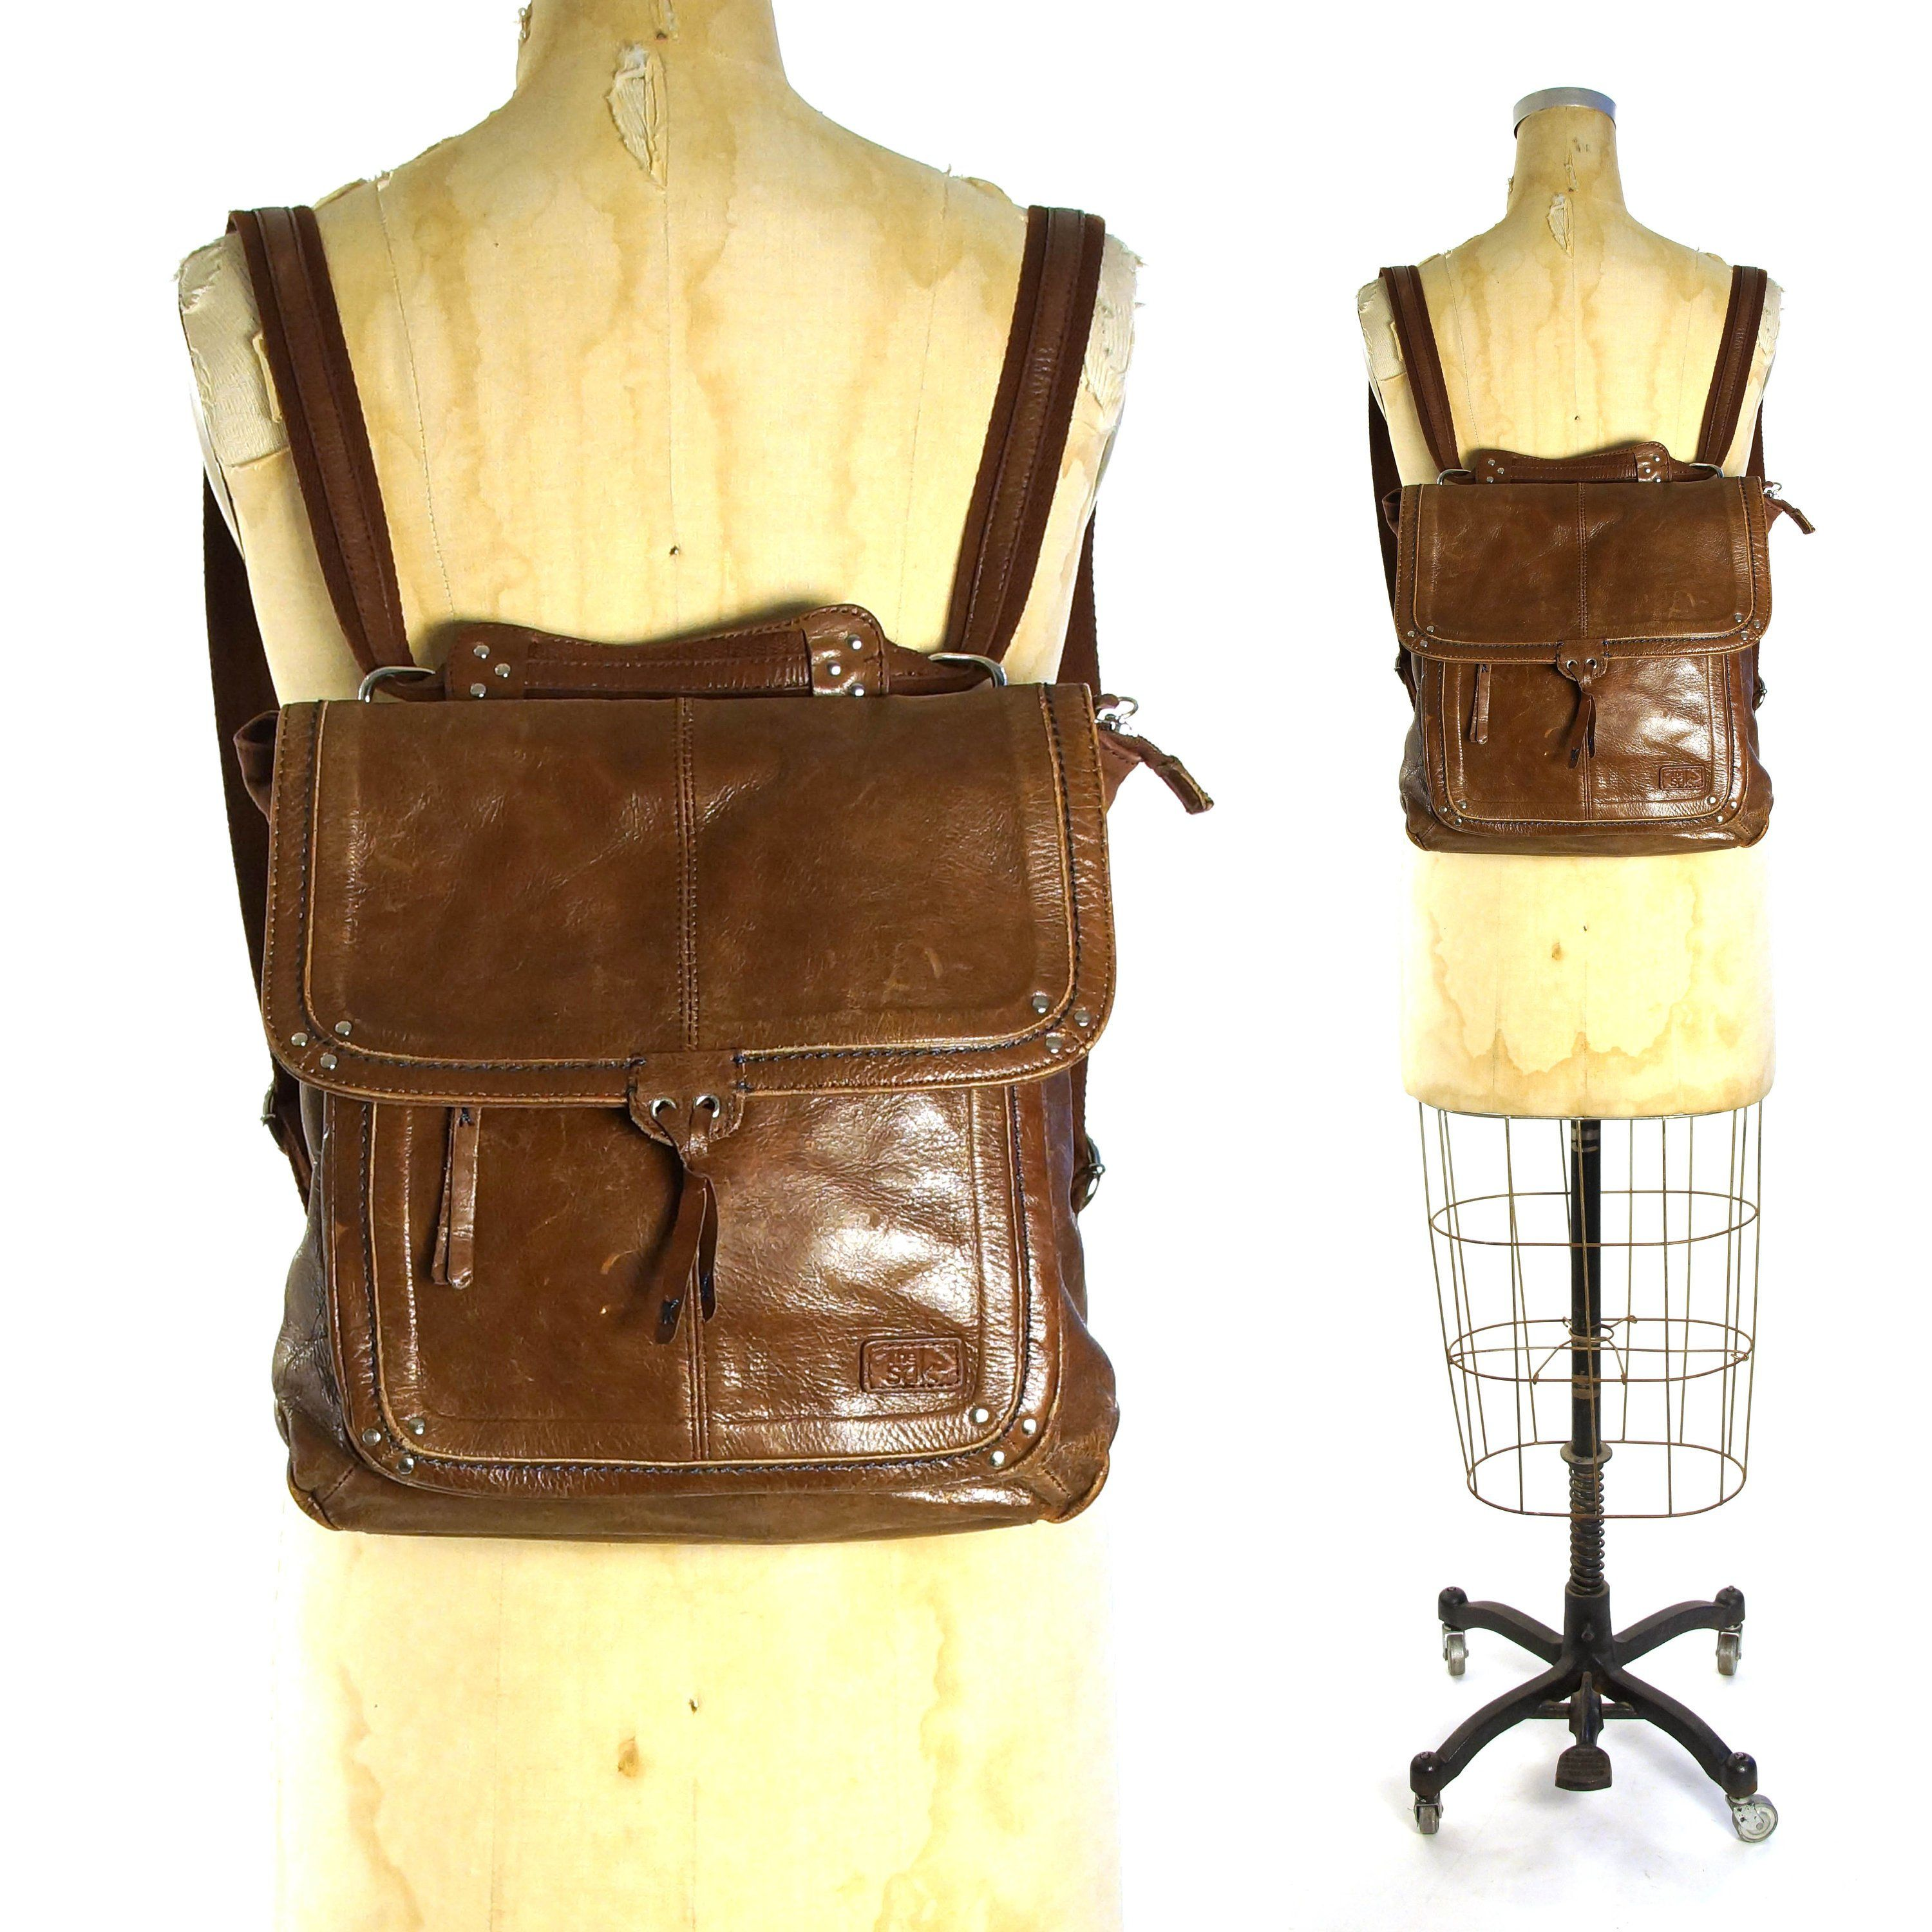 205251d61b33 ... Bags   Accessories by SPUNK Vintage. Brown Leather Backpack Vintage 90s  Medium Size Convertible Crossbody Purse to Rucksack by The SAK Boho